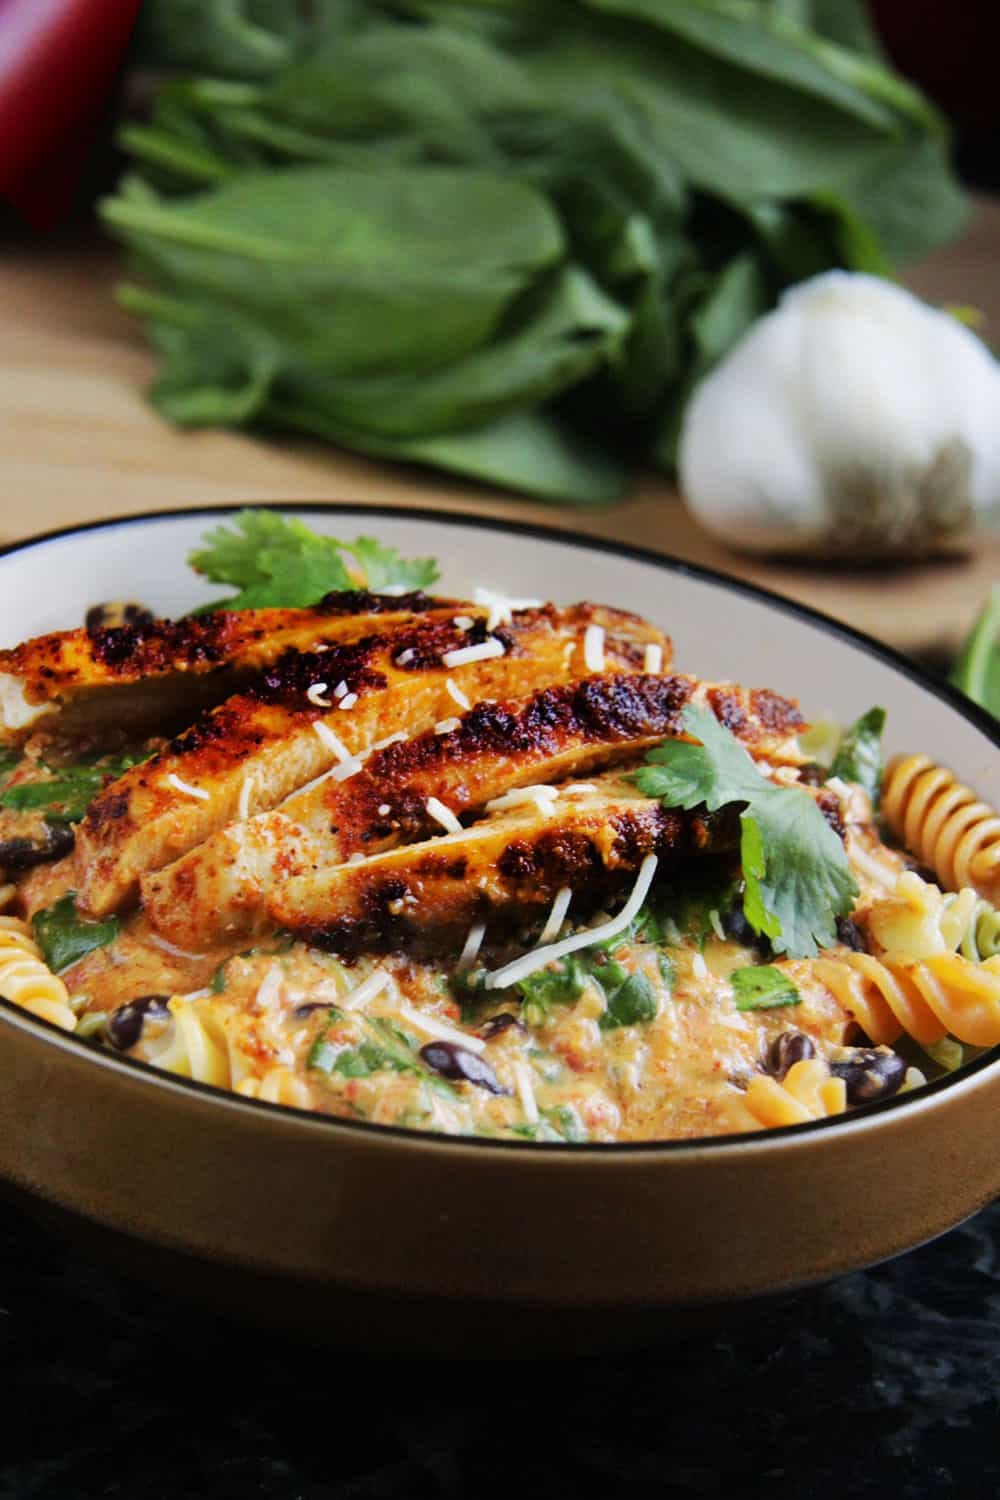 ... creamy goat cheese pasta with spinach and roasted mushrooms chipotle